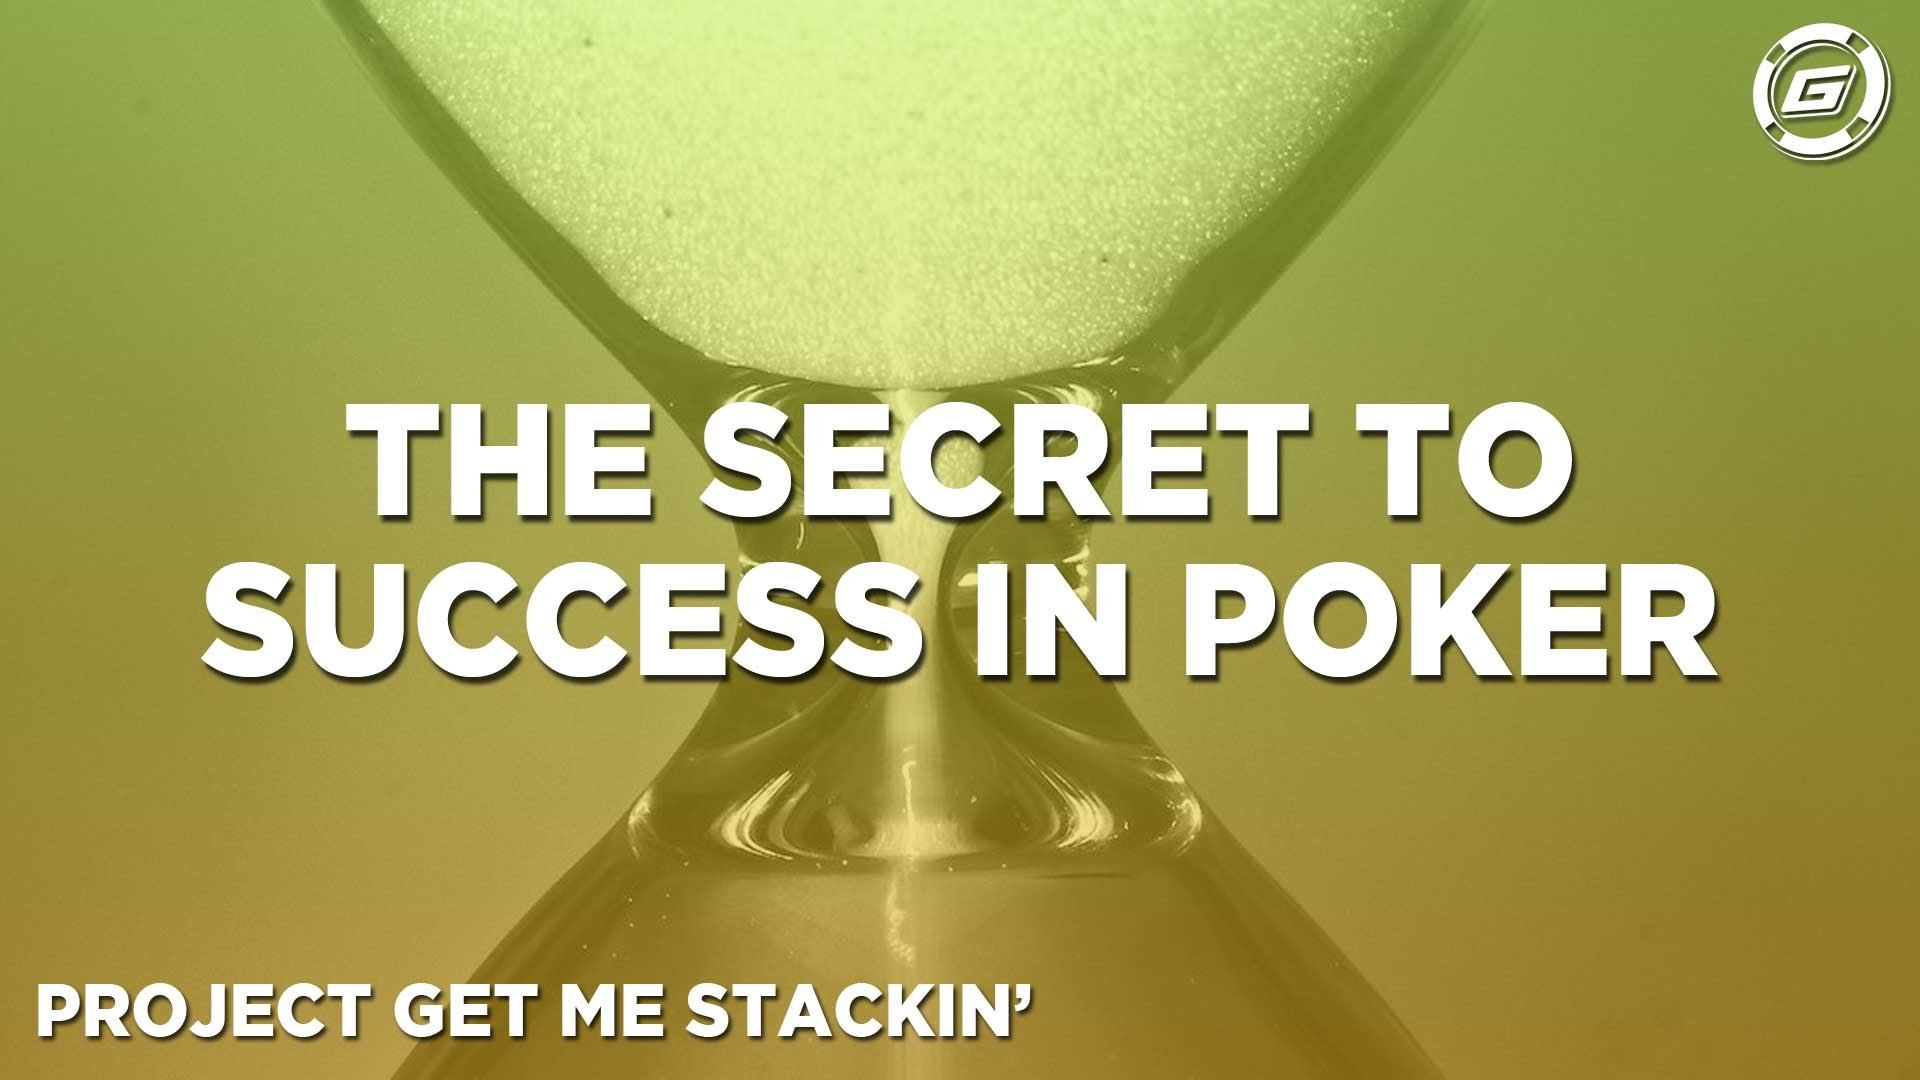 The Secret Ingredient To Success In Poker - LESSON #9